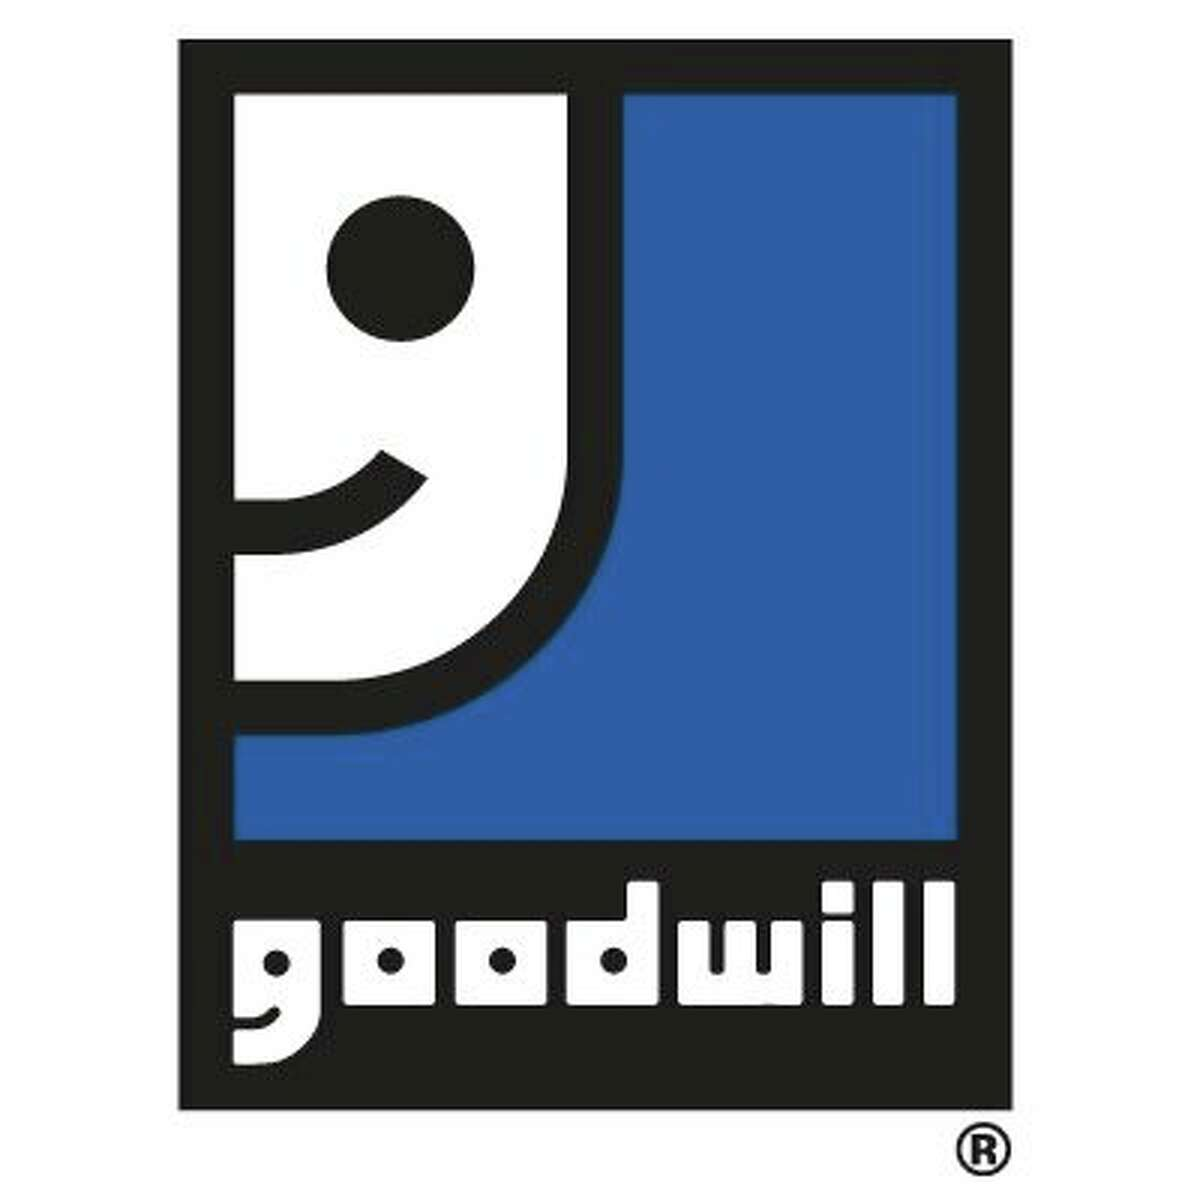 Goodwill San Antonio is asking residents to hold off on their donations during coronavirus-related restrictions until operations can resume.